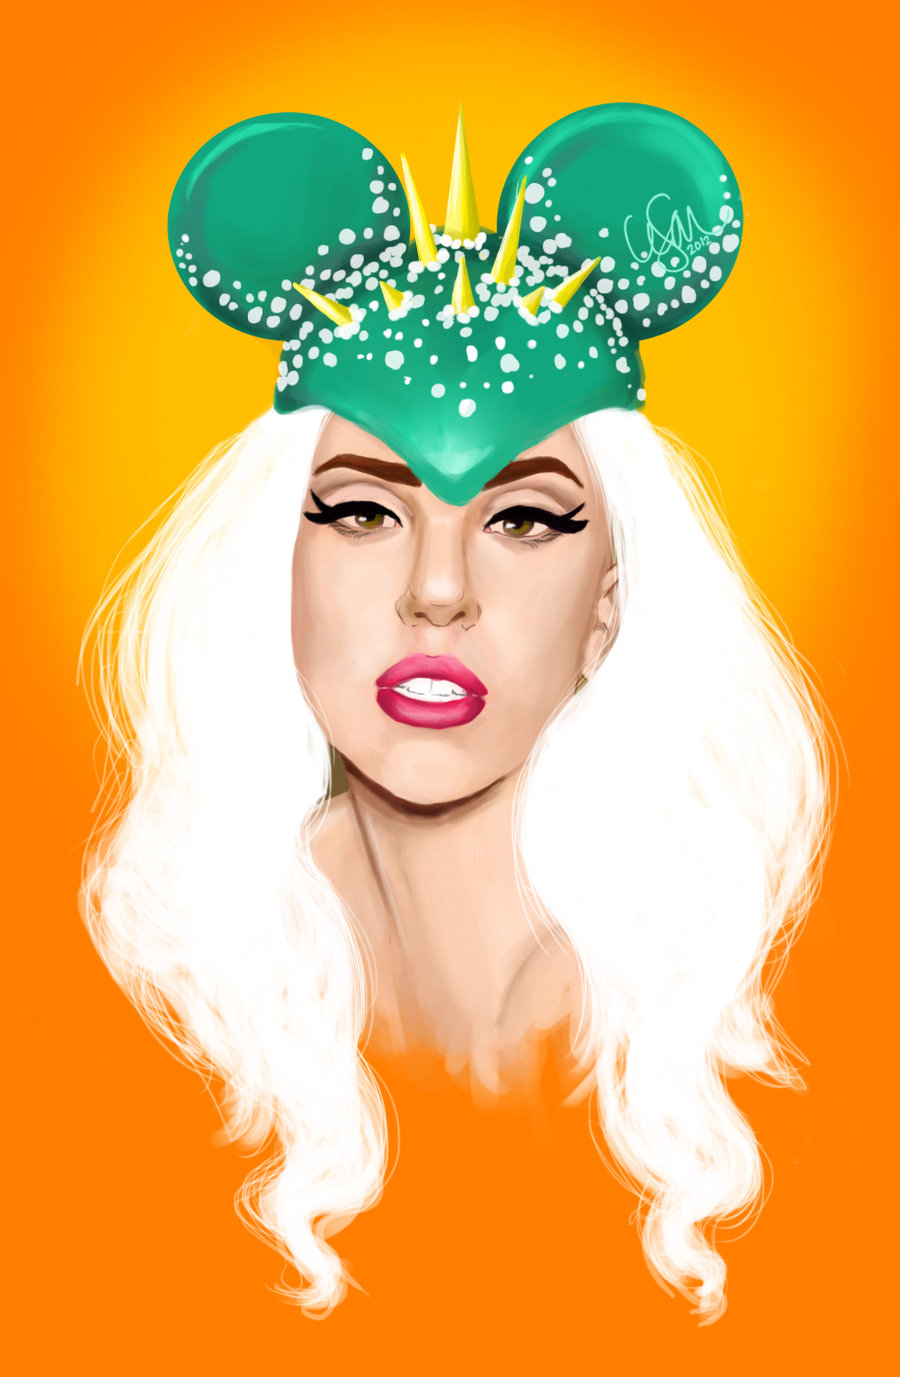 Lady Gaga Iphone Wallpaper Artpop Images Pictures Becuo 900x1377